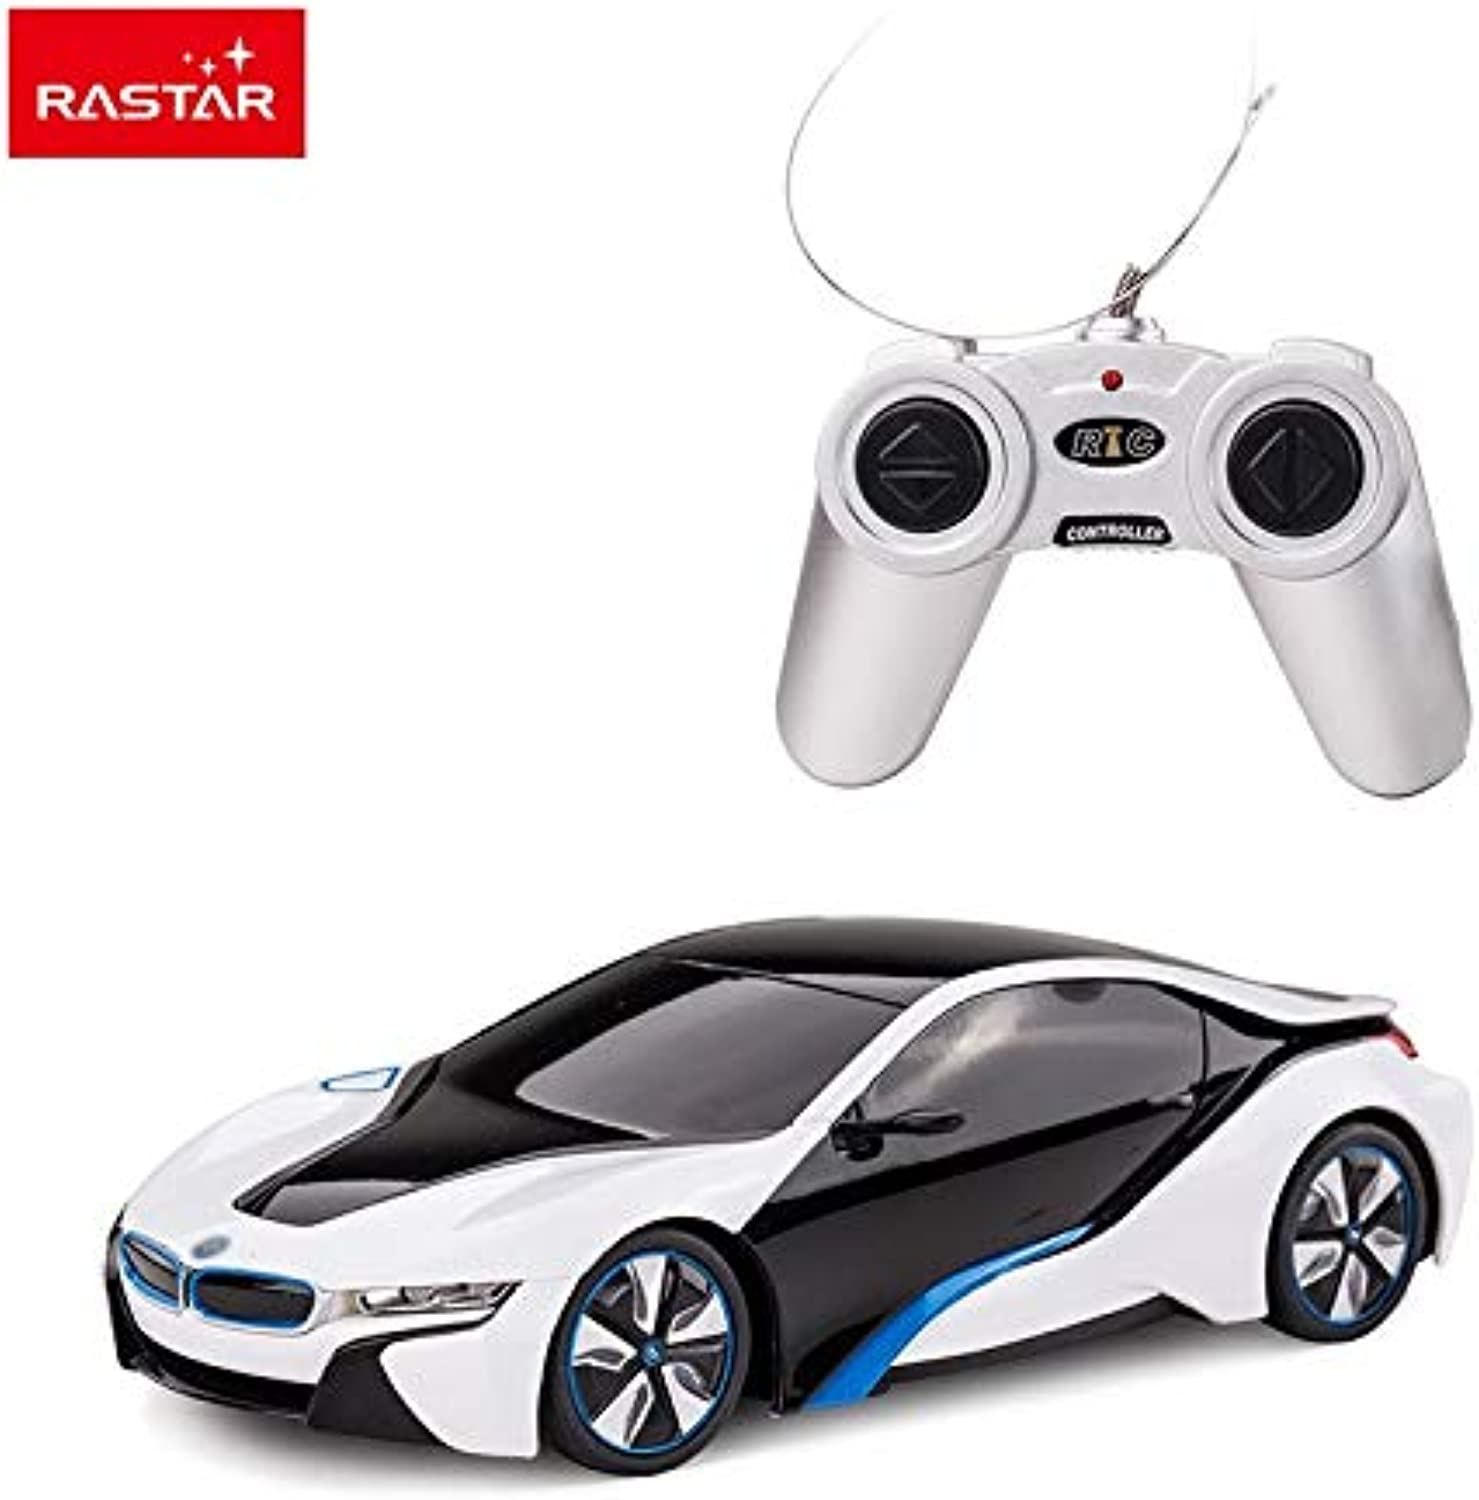 Generic Rastar Licensed rc car 1 24 BMW I8 Silver Stock Turn Left and Turn Right Electric car Mini rc car for Sale 48400 White